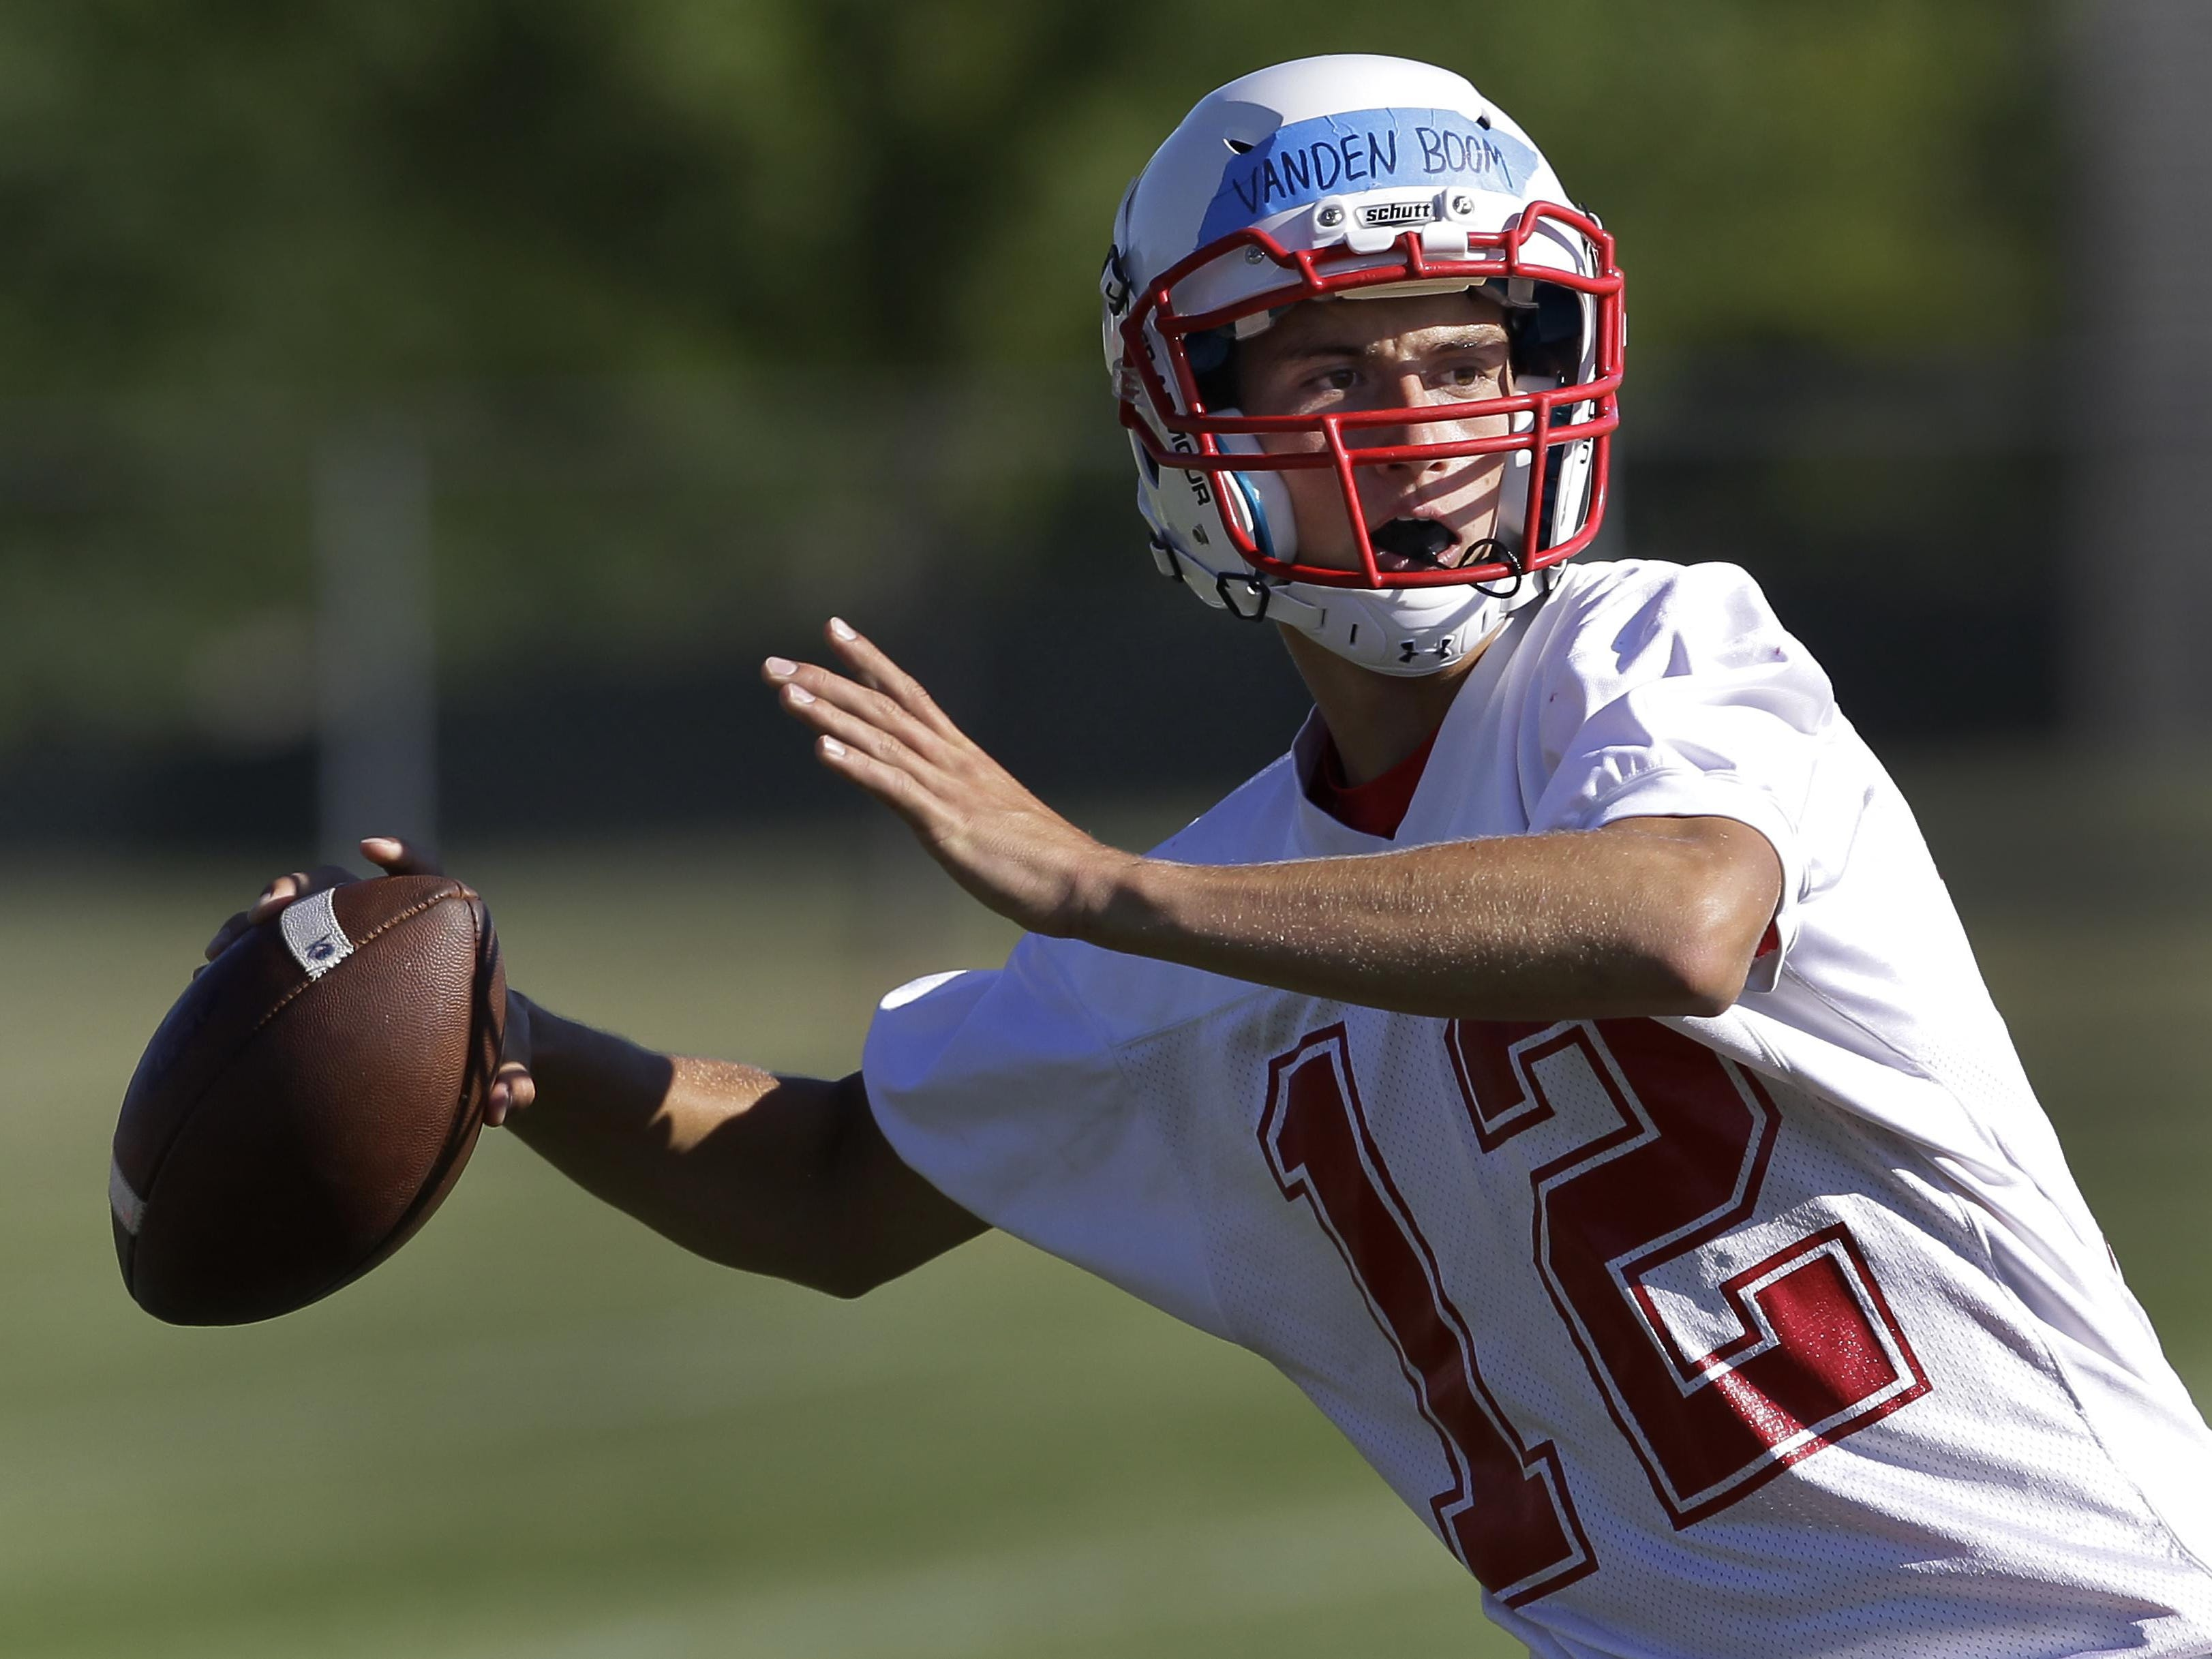 Kimberly High School's quarterback Danny Vanden Boom throws a pass during football practice Tuesday, Aug. 4, in Kimberly.